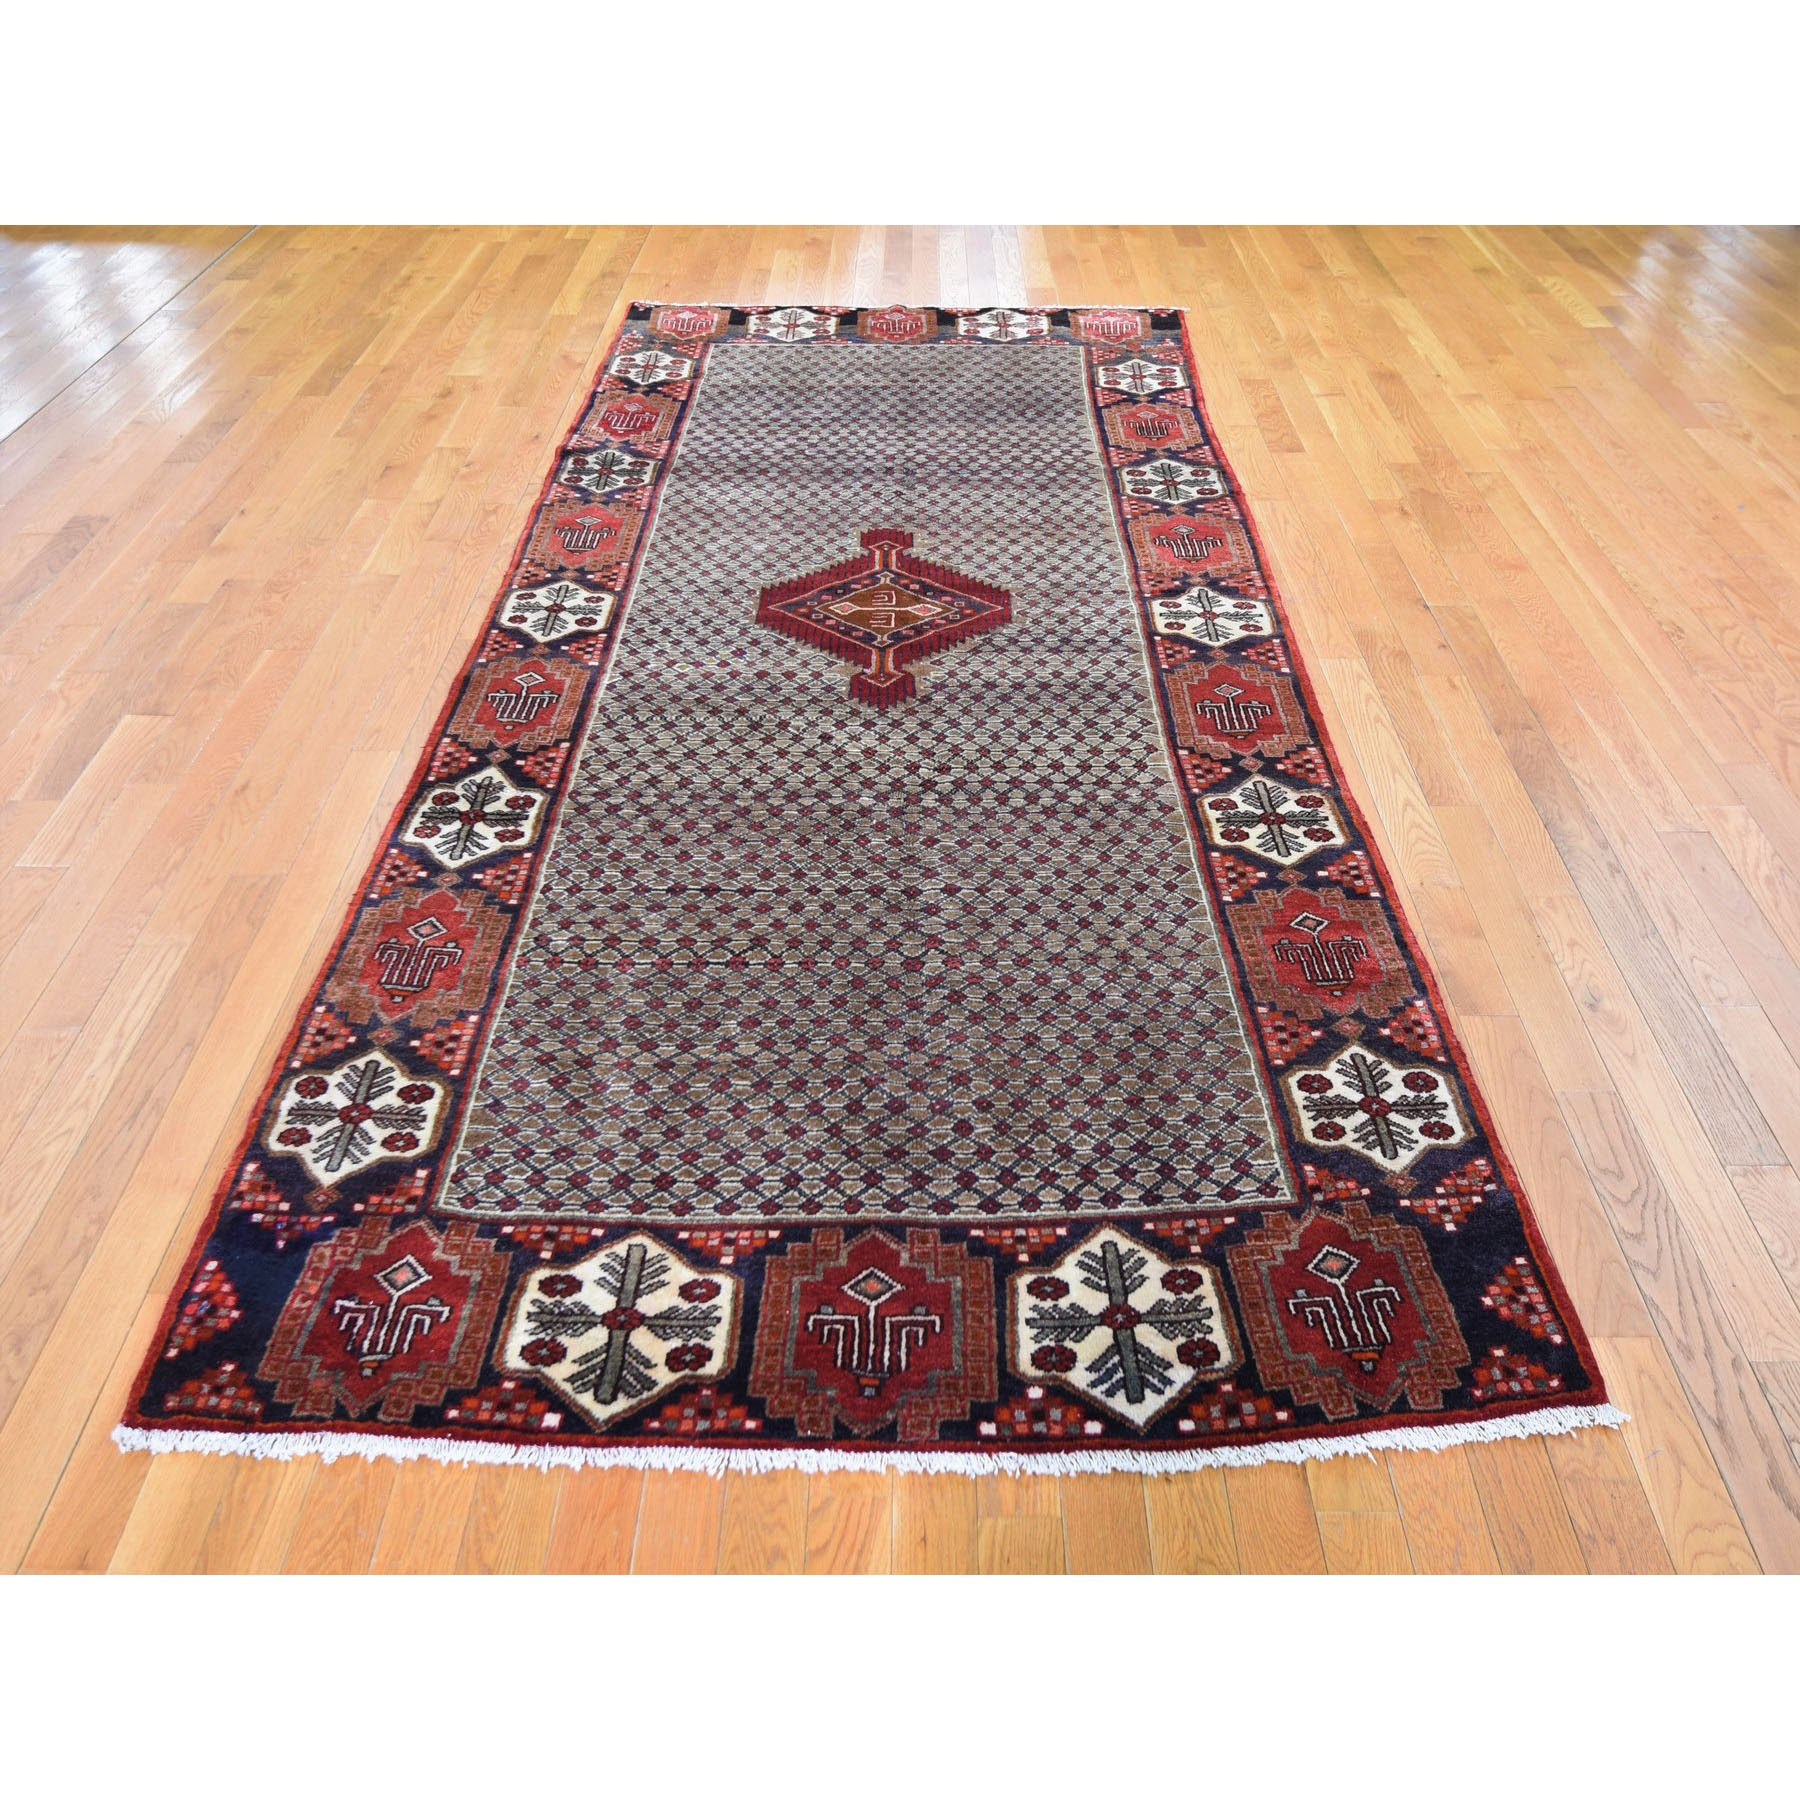 5'x11' Gallery Size New Persian Serab Pure Wool Camel Hair Hand Knotted Oriental Rug